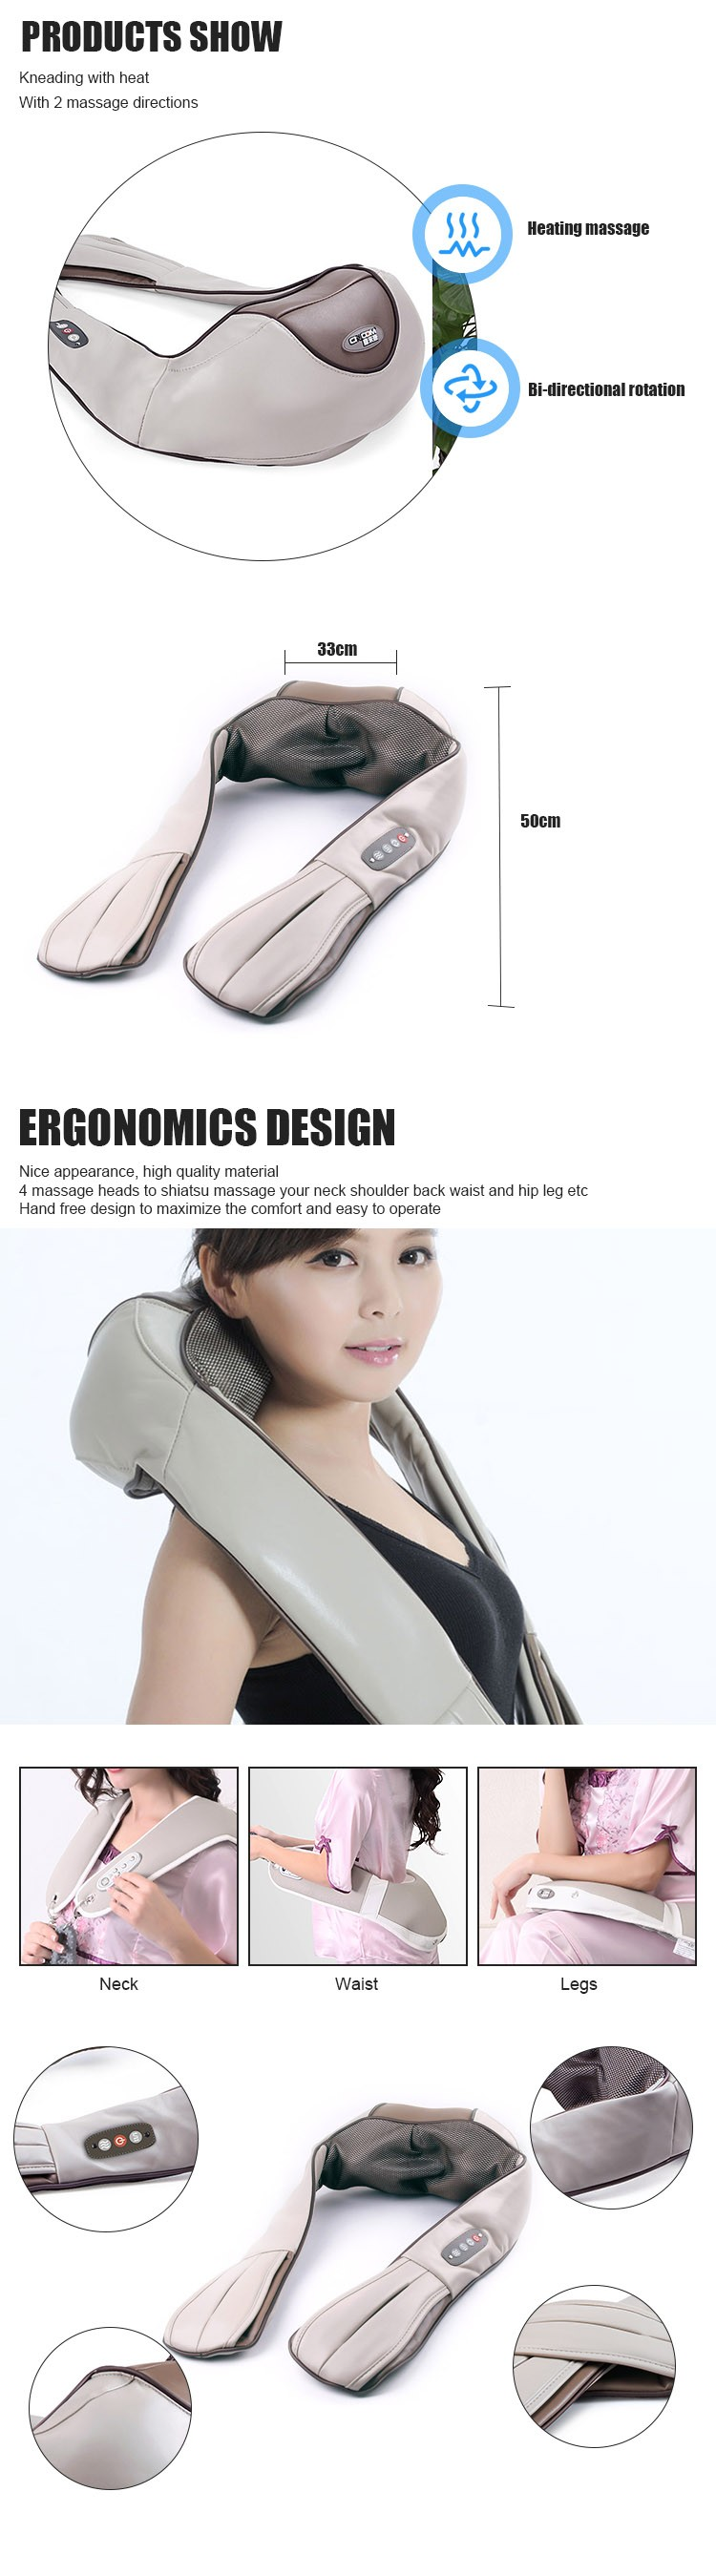 2018 Wholesales Good Shape Hand Held Electric Massager